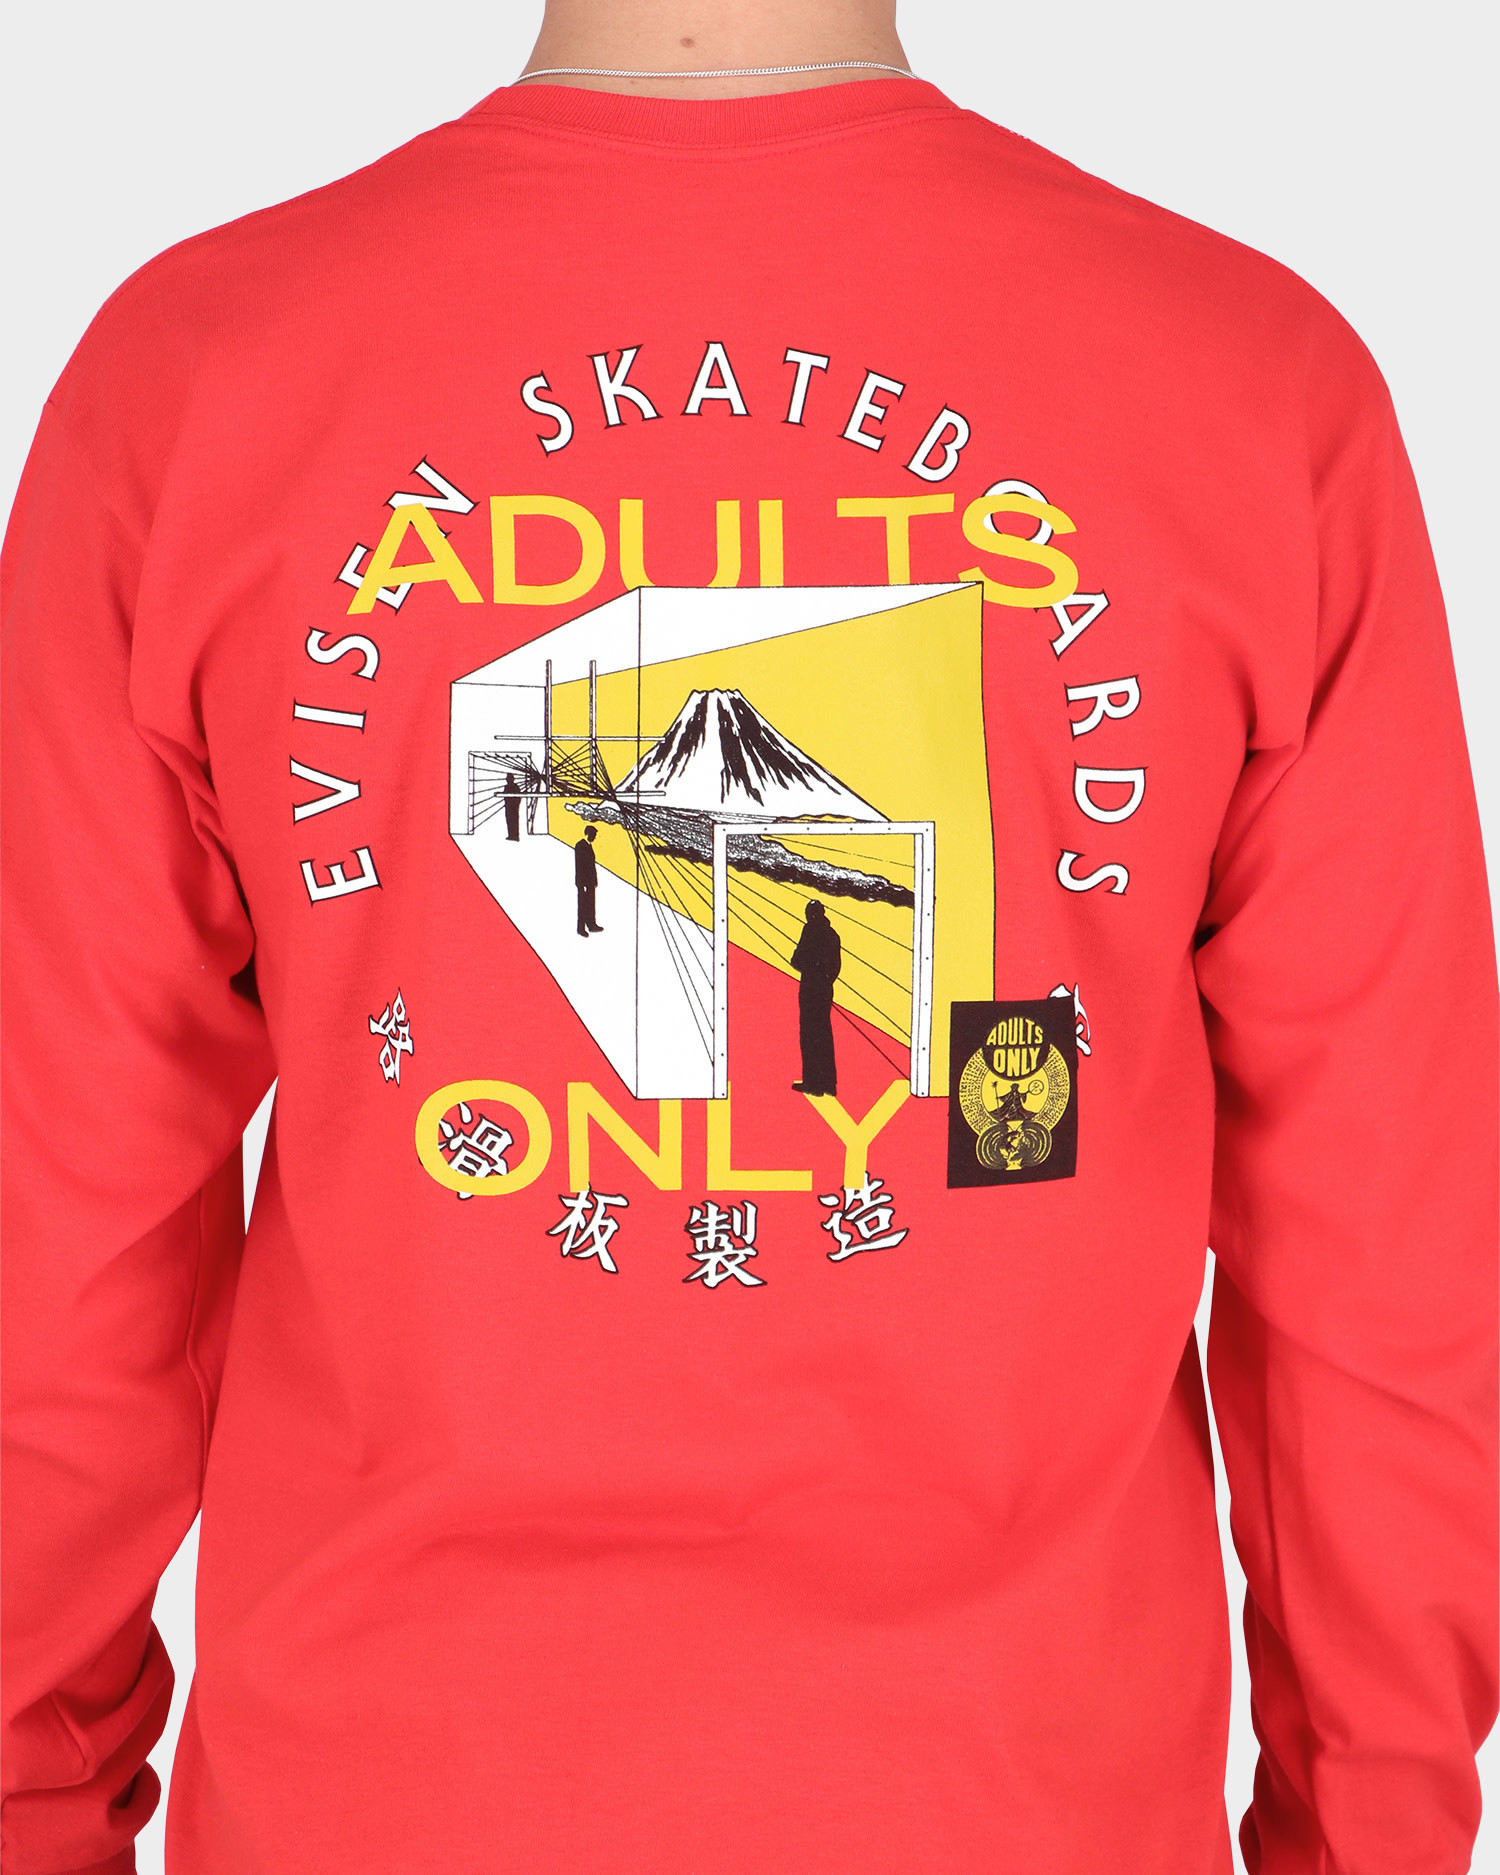 Evisen Adults Only Longsleeve Red